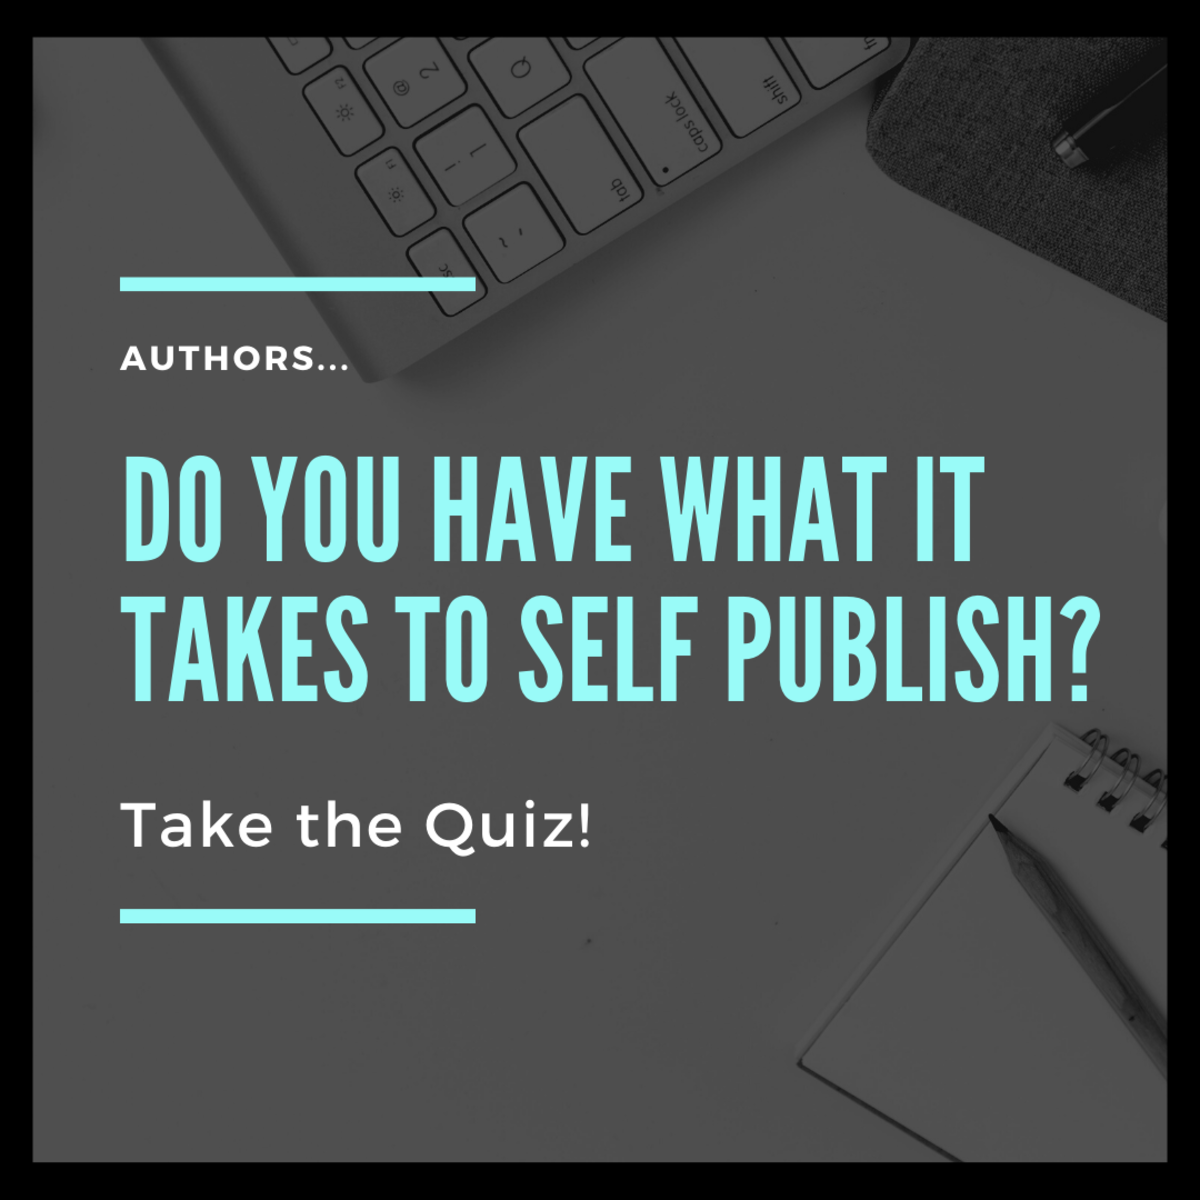 Do You Have What It Takes to Self Publish? Take the Quiz